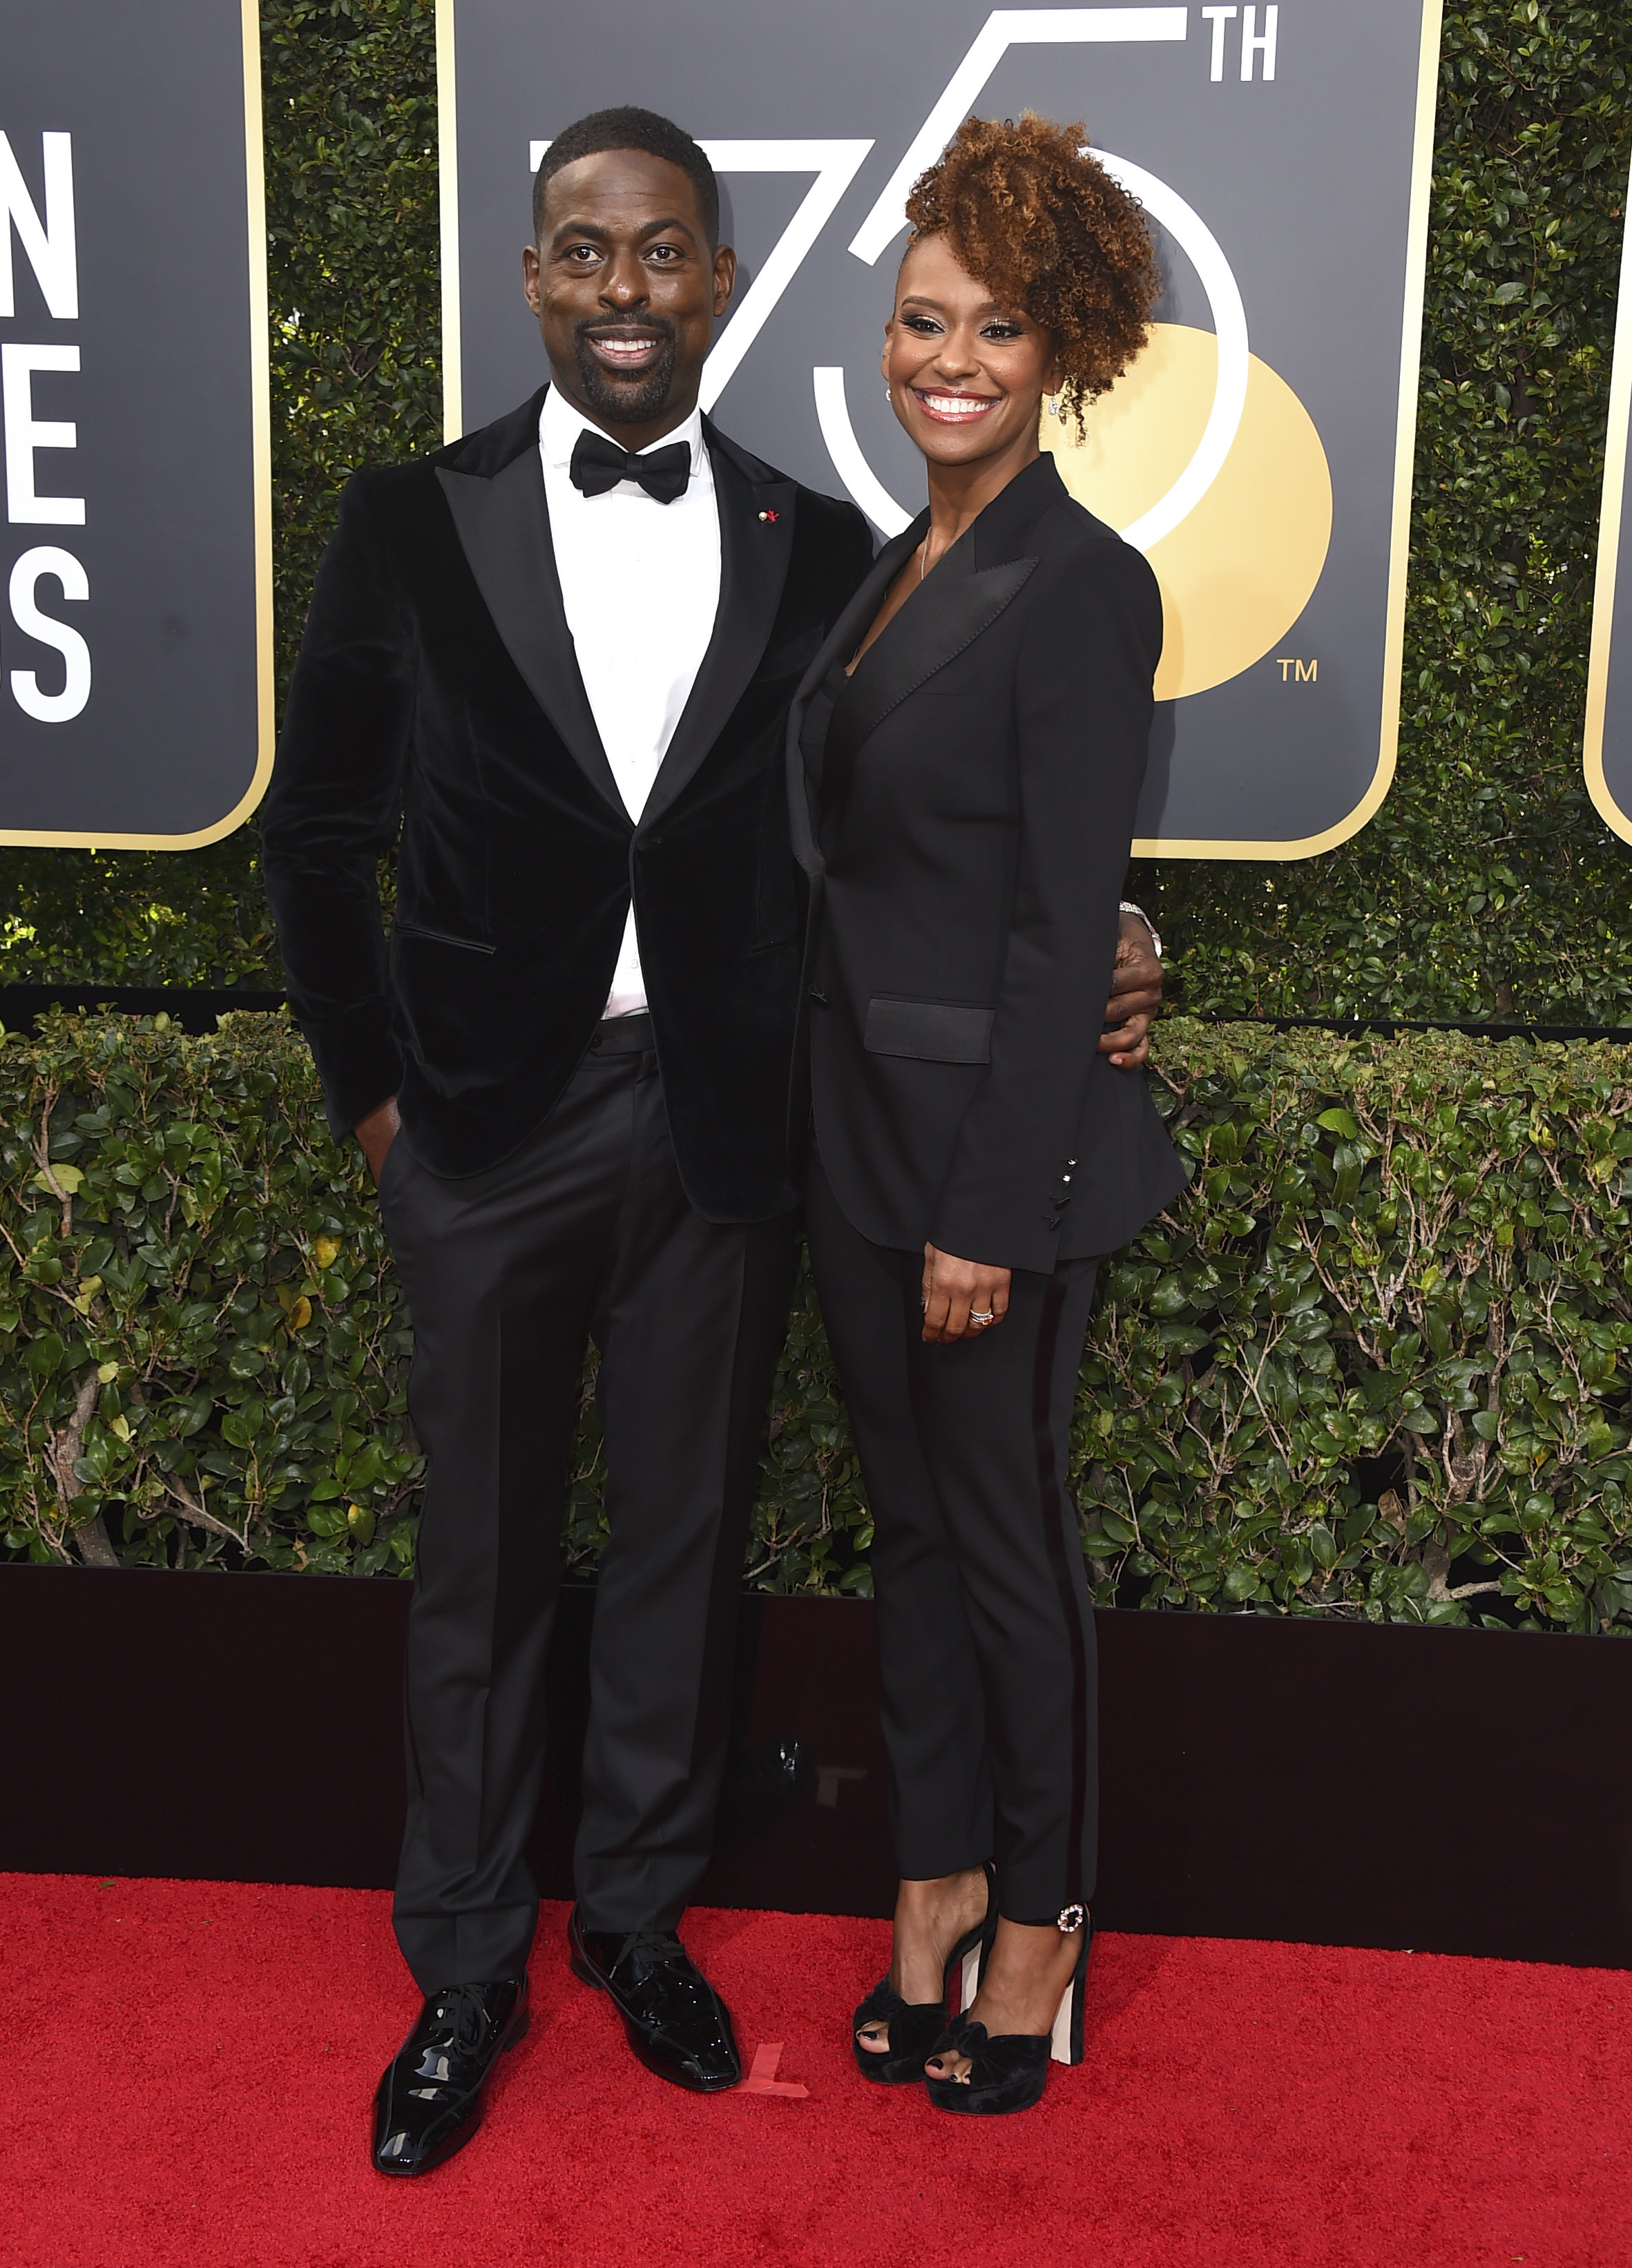 <div class='meta'><div class='origin-logo' data-origin='AP'></div><span class='caption-text' data-credit='Jordan Strauss/Invision/AP'>Sterling K. Brown, left, and Ryan Bathe arrive at the 75th annual Golden Globe Awards at the Beverly Hilton Hotel on Sunday, Jan. 7, 2018, in Beverly Hills, Calif.</span></div>